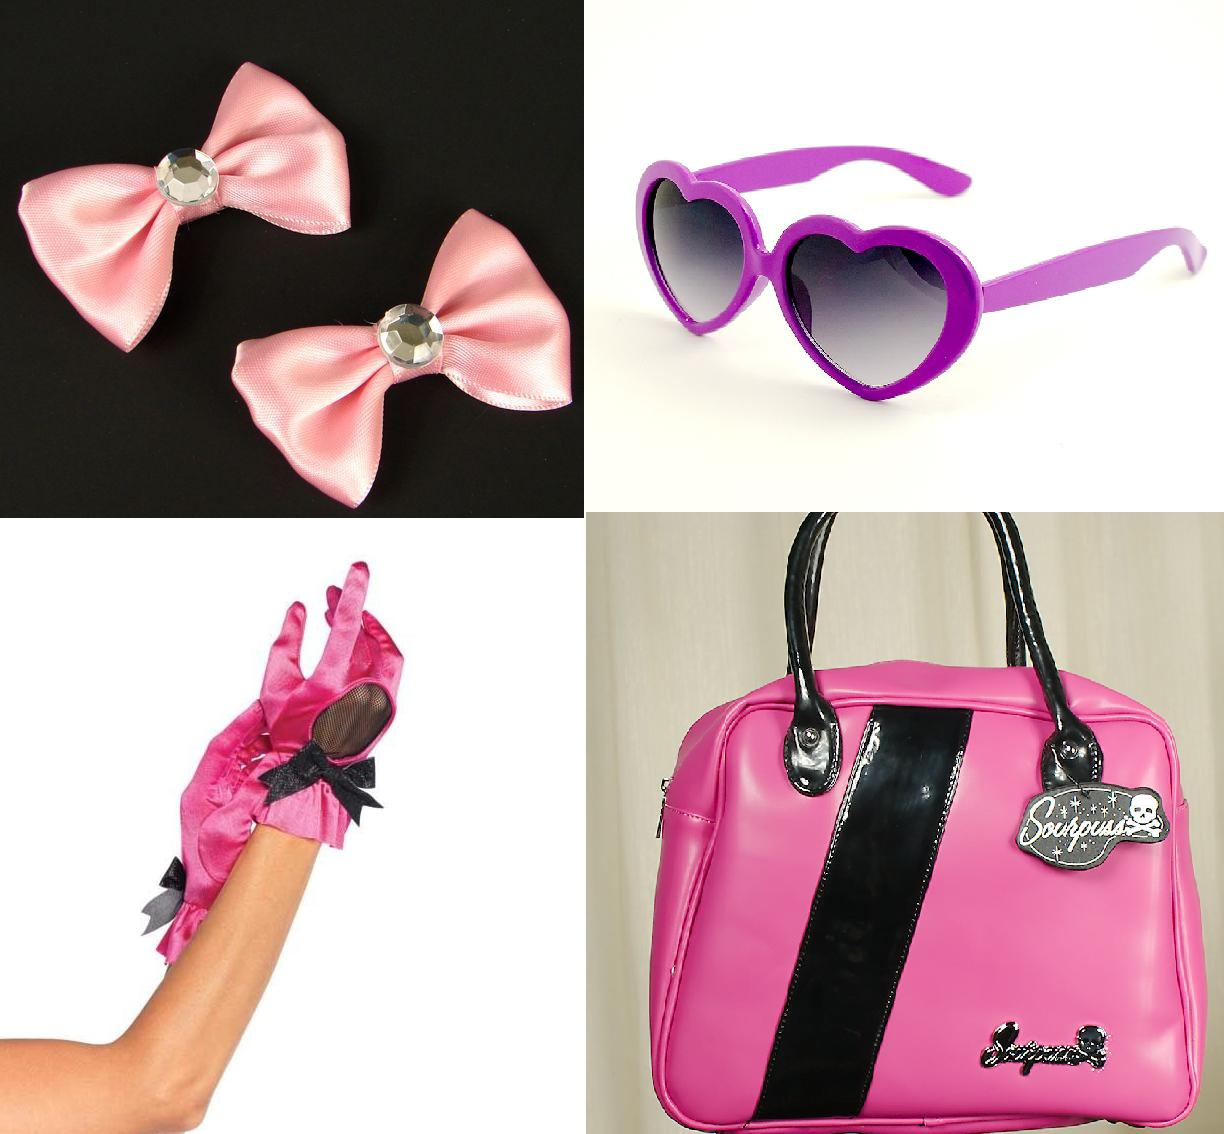 Sourpuss bowling bag, retro gloves, hairbows and heart glasses